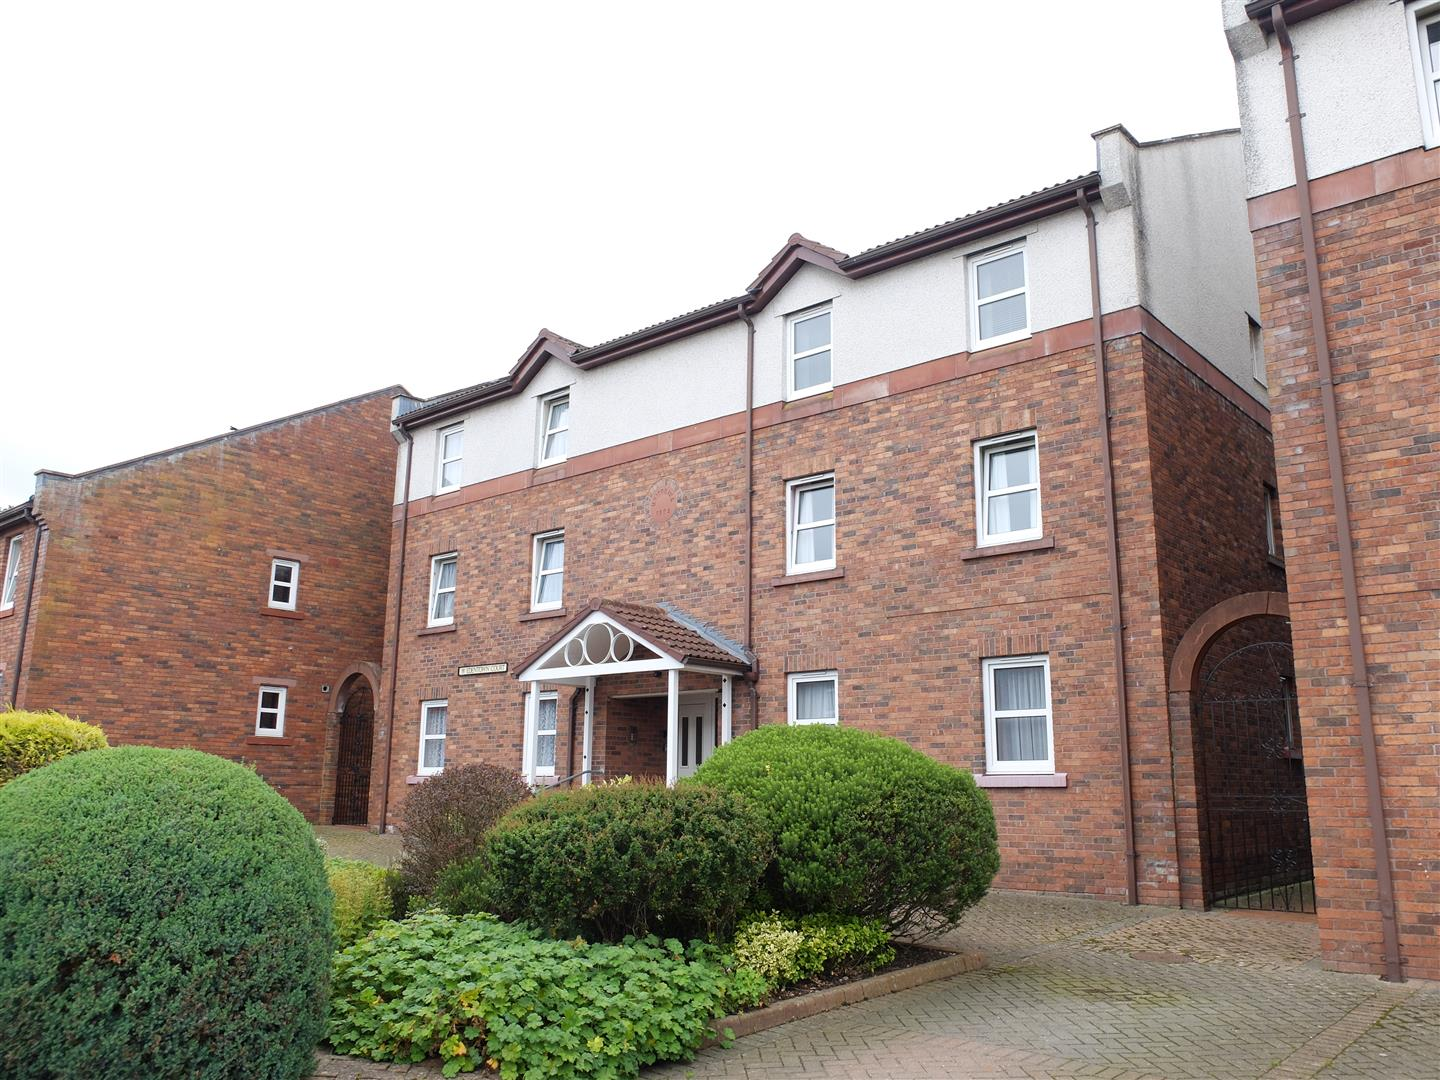 Flat 8, Edentown Court Eden Street Carlisle 2 Bedrooms Flat For Sale